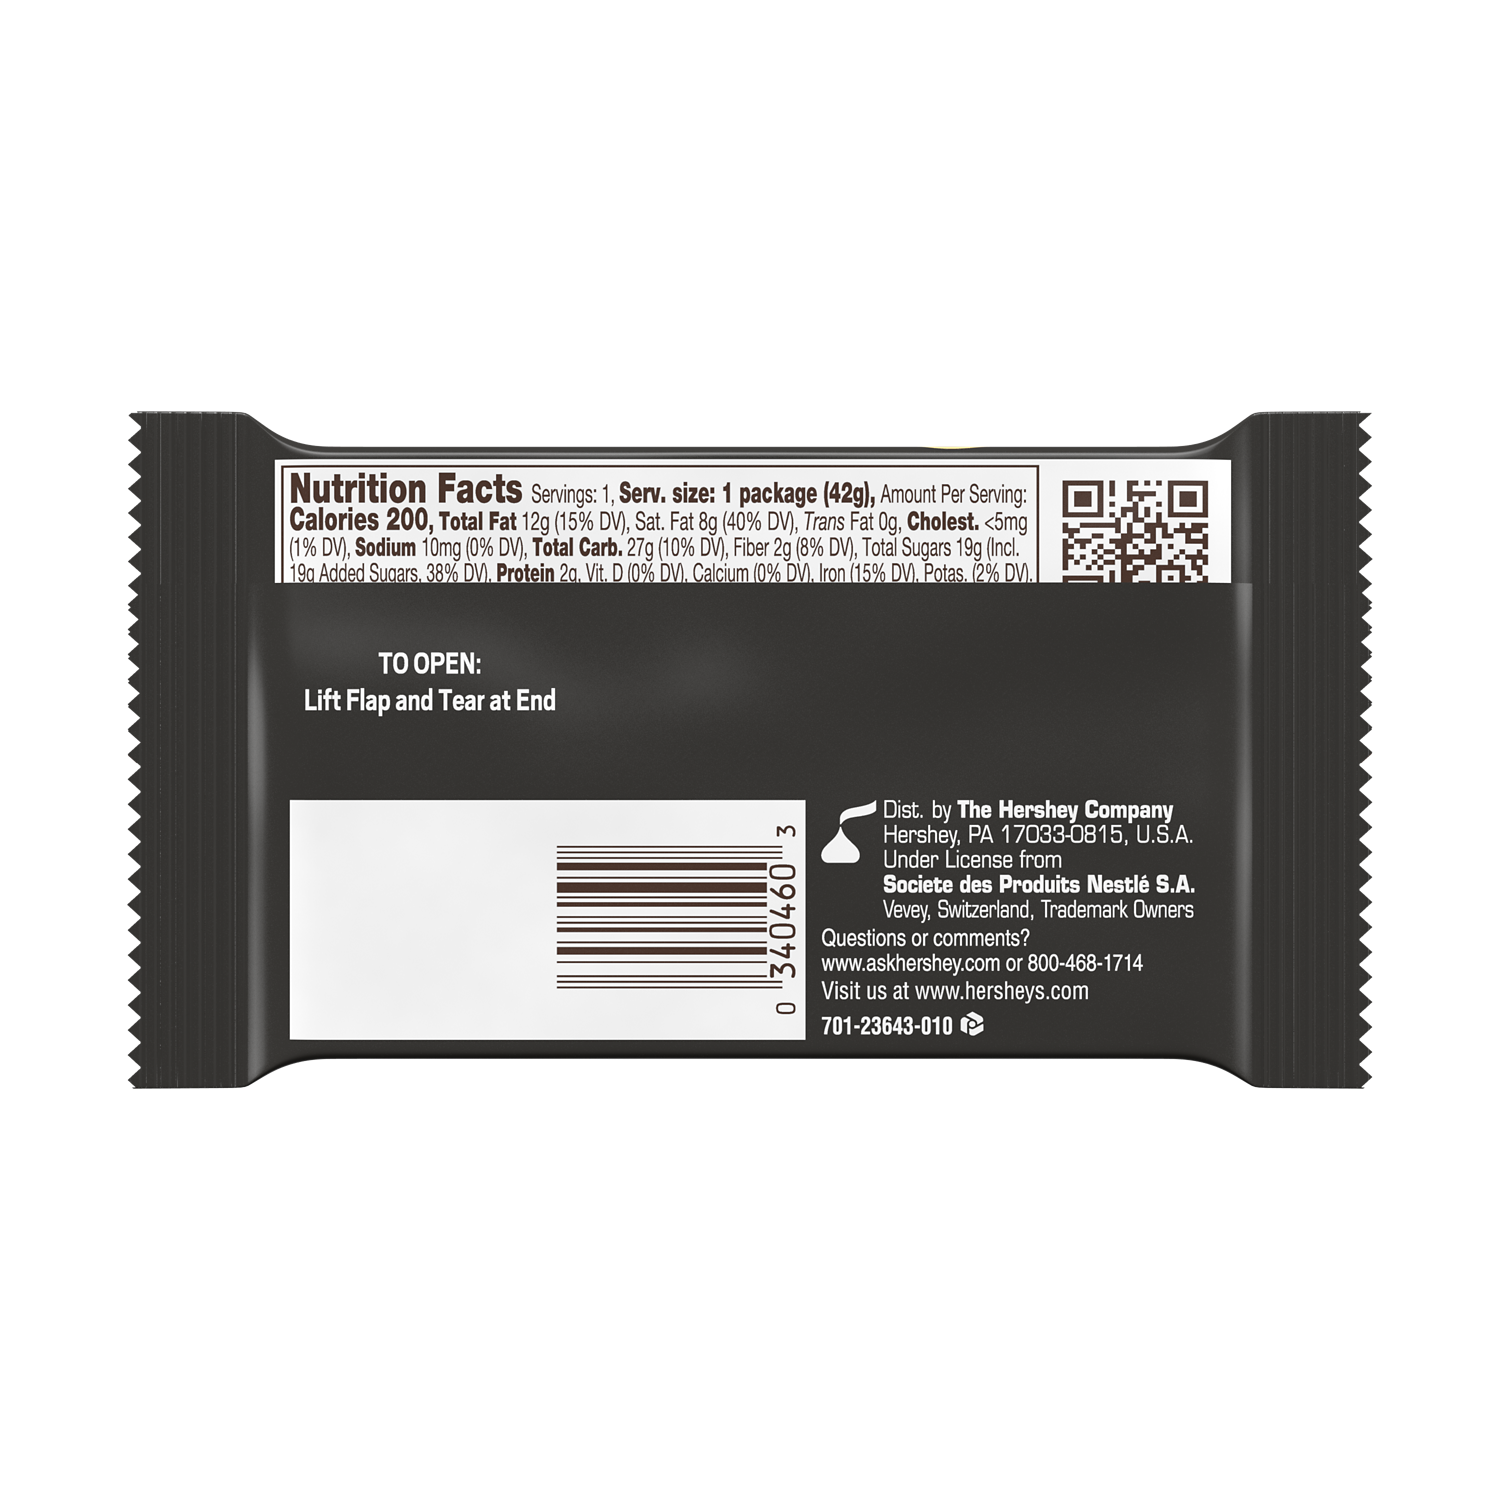 KIT KAT® Dark Chocolate Candy Bar, 1.5 oz - Back of Package